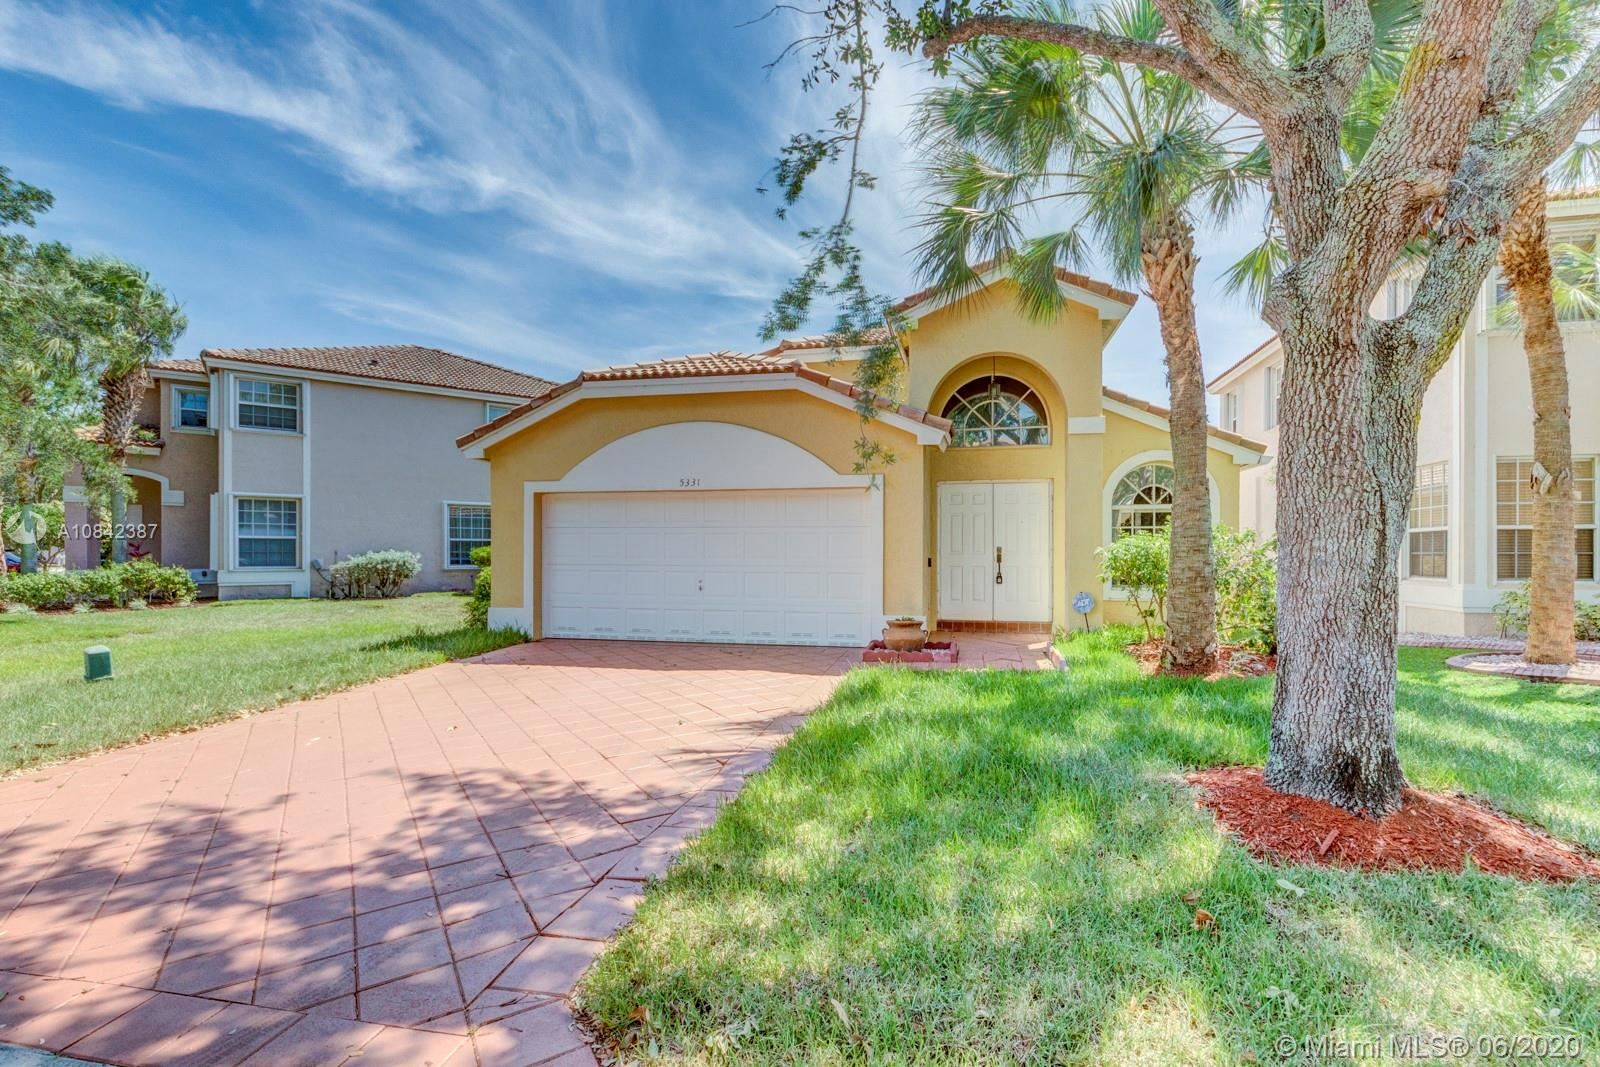 5331 NW 125th Ave, Coral Springs, FL 33076 - #: A10842387